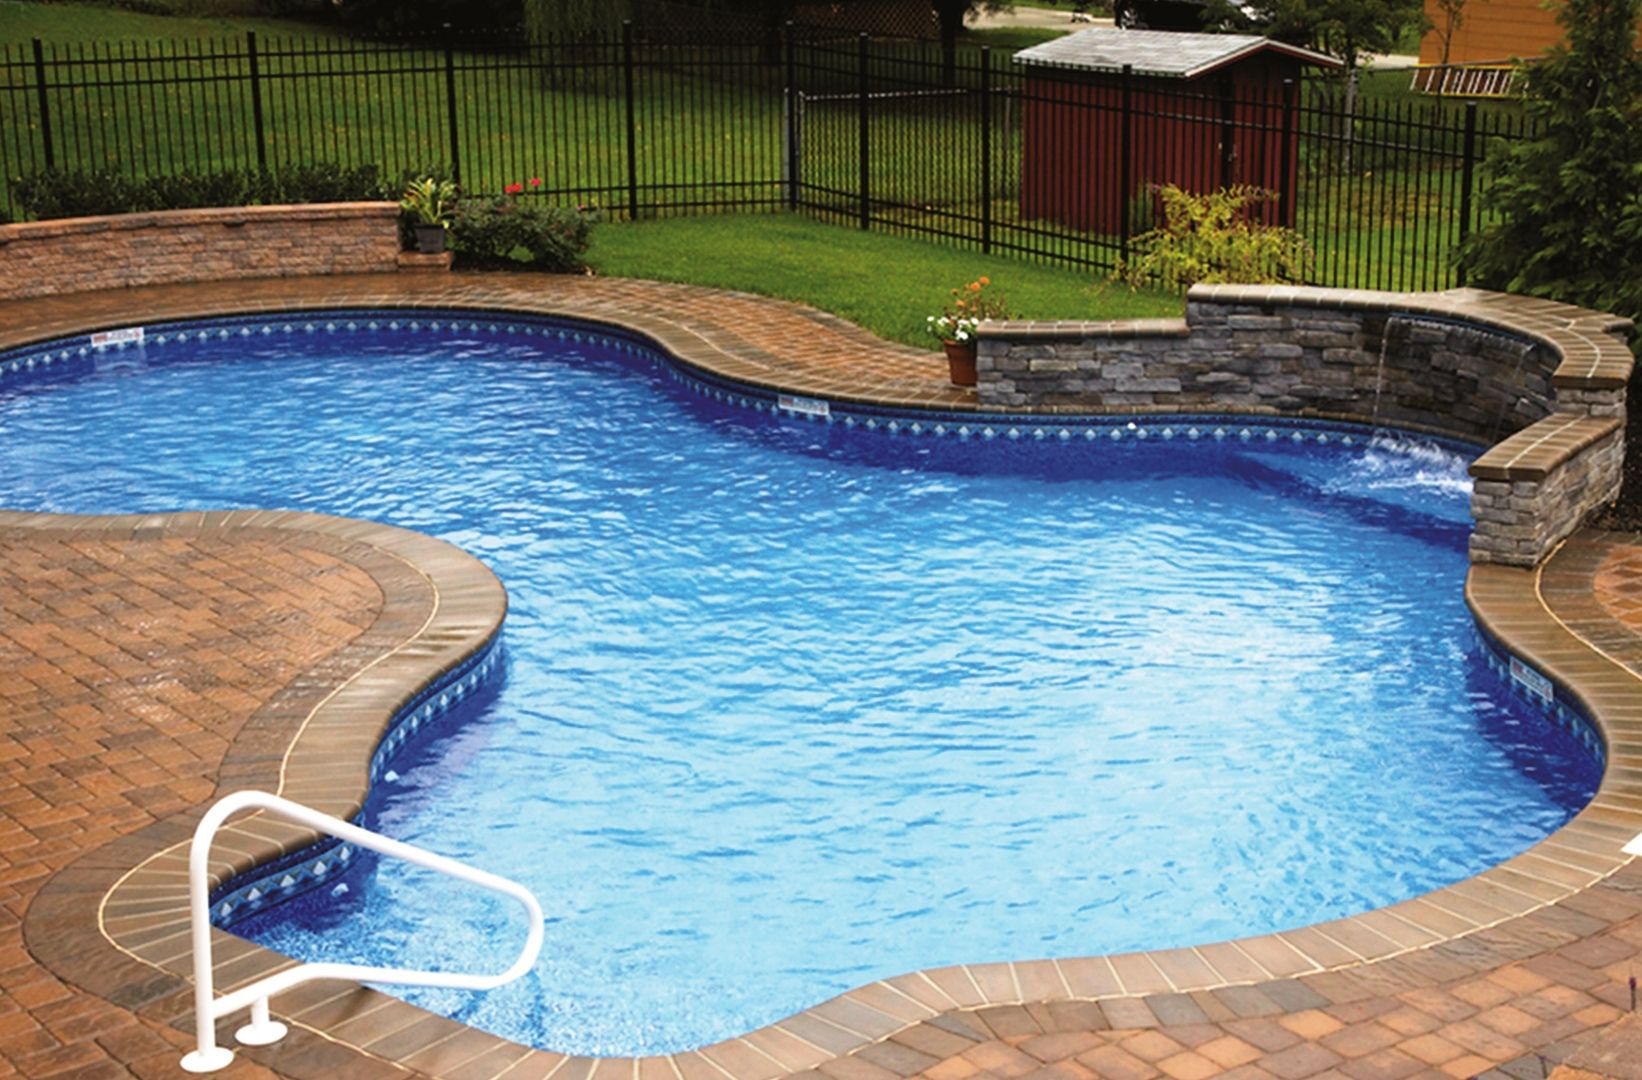 Beautiful Backyard Pools For Your Home Design Exterior Designs Marvelous  Admirable Pool Design Ideas Stylish Swimming Backyard Beautiful Brown Brick  ...